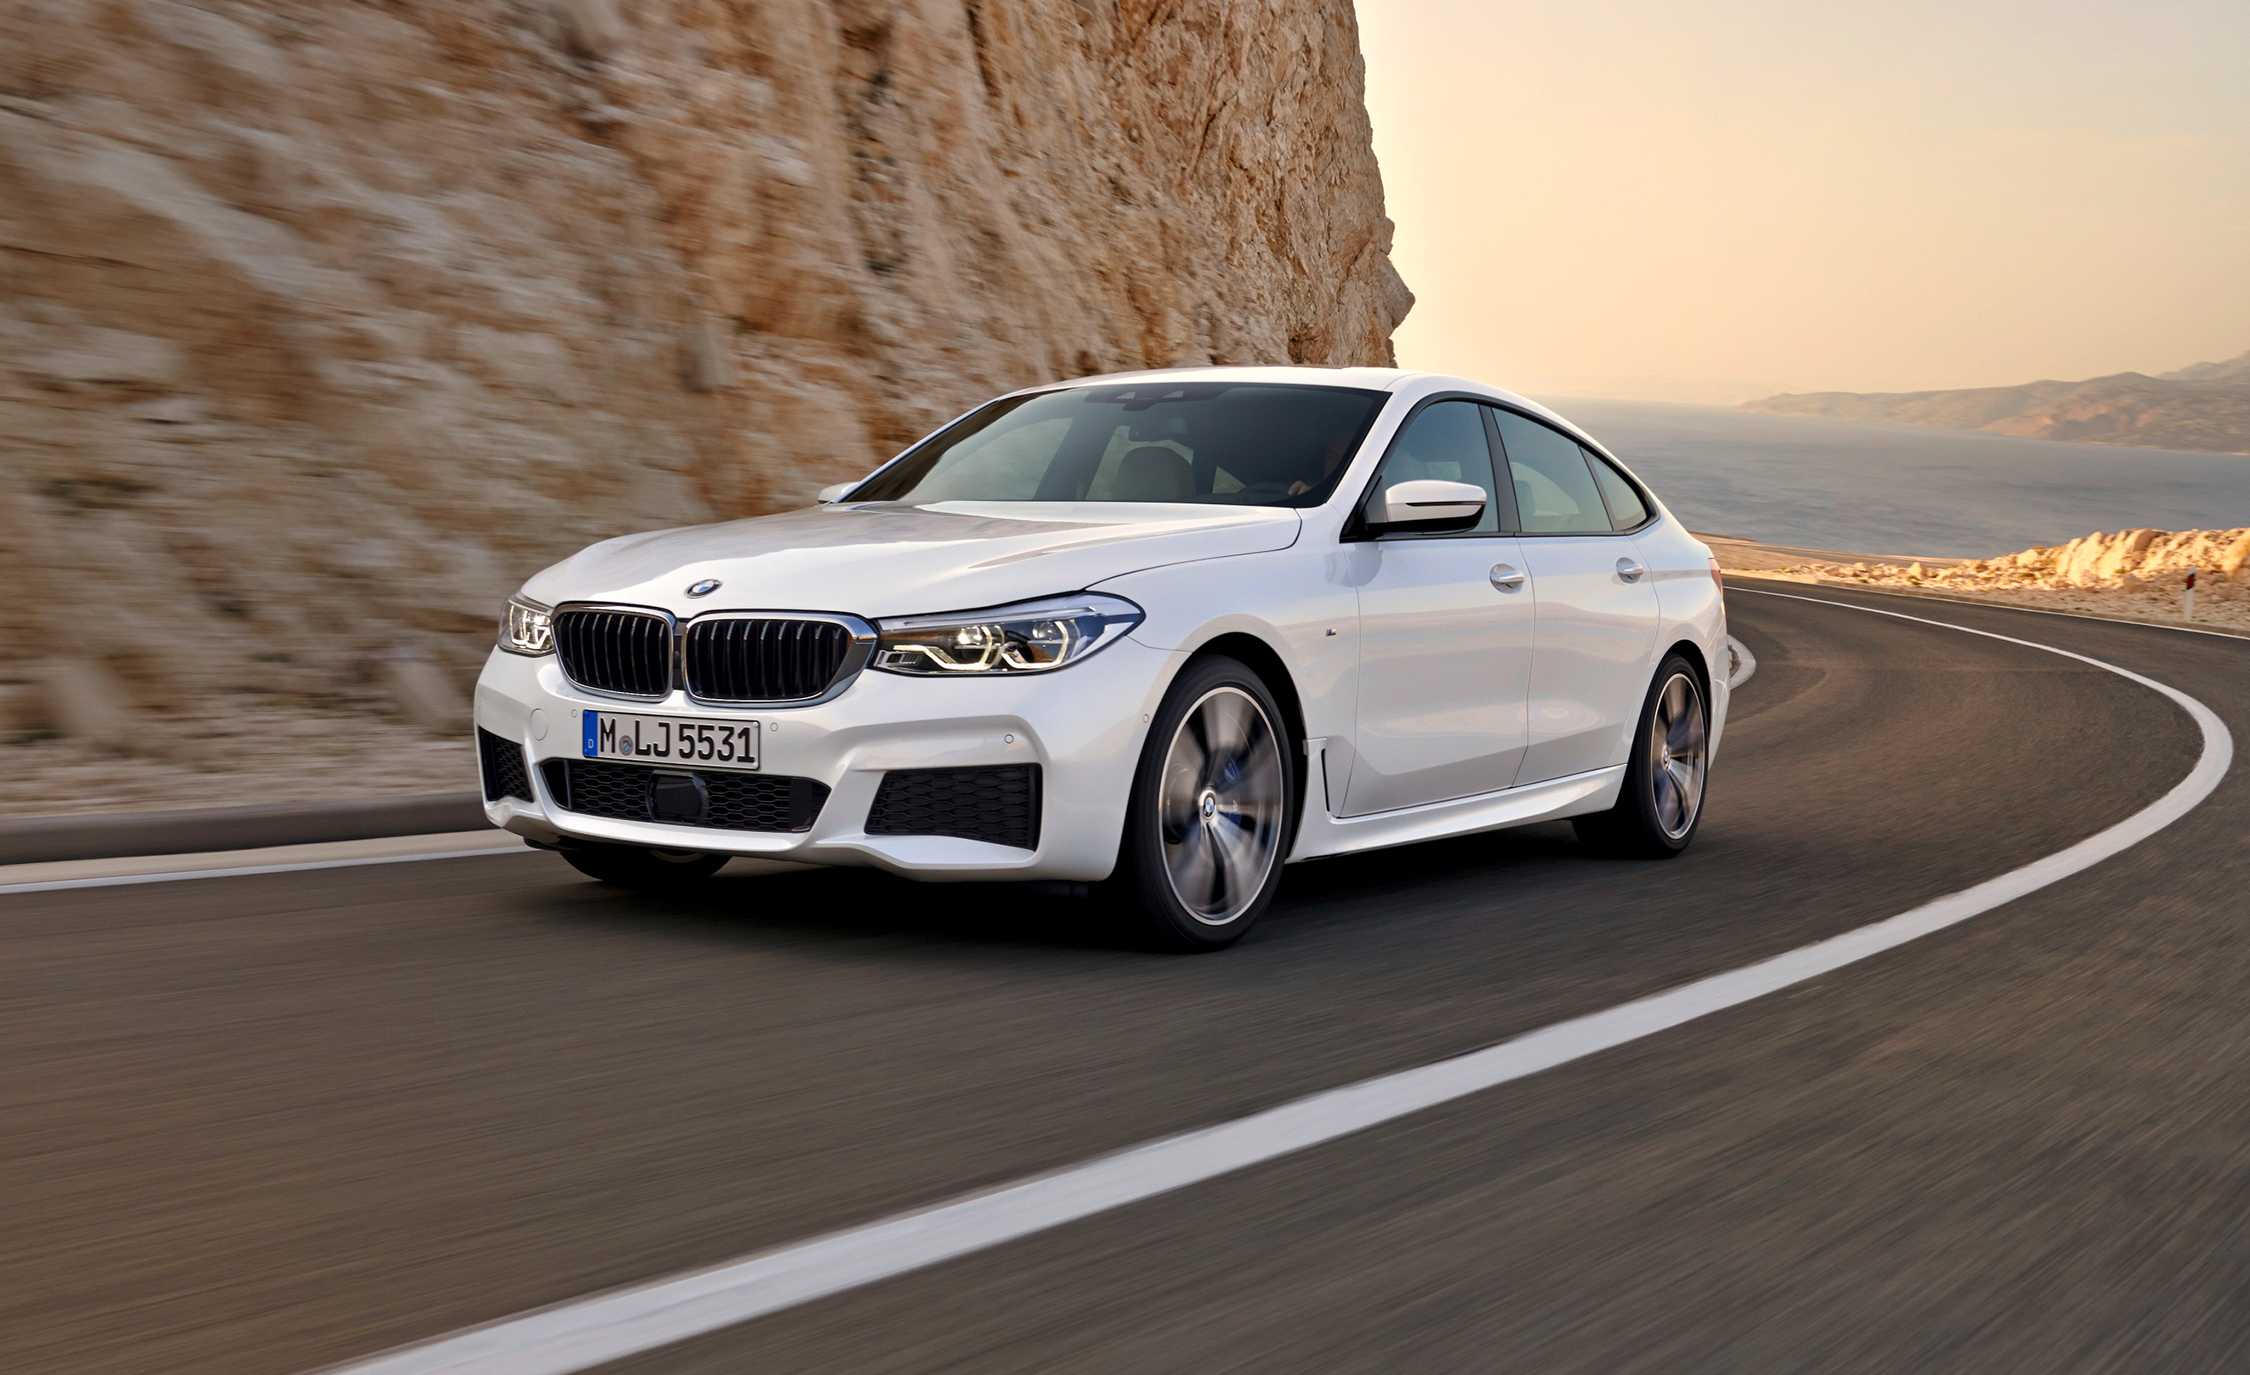 BMW, 6 series, Gran Turismo, diesel, variant, Auto, car, NewsMobile, Mobile News, India